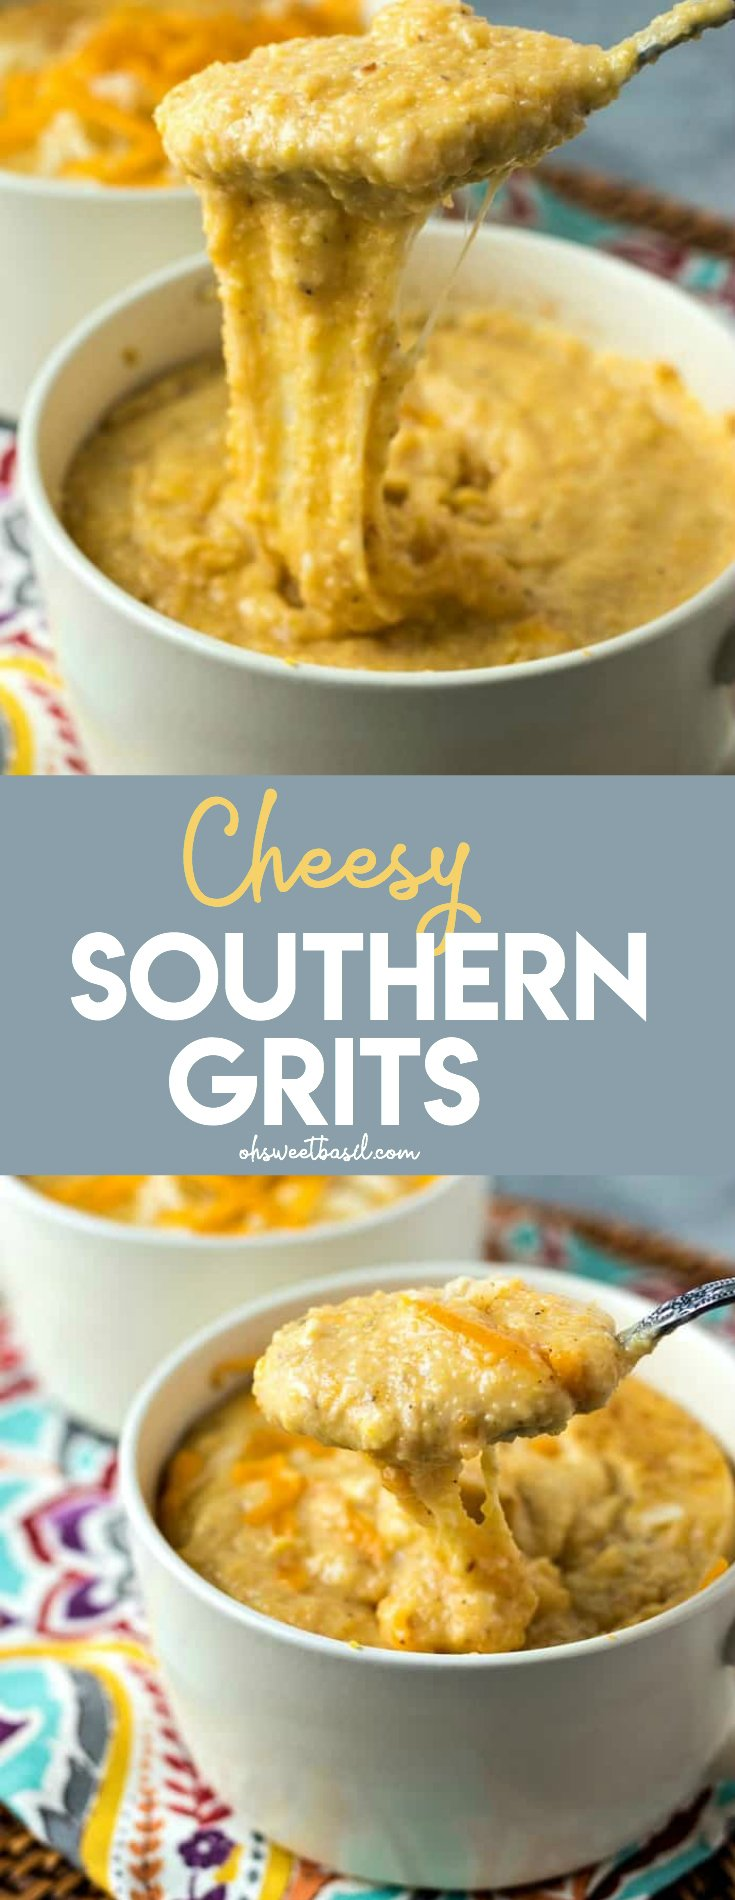 a bowl of cheesy grits with a patterned napkin underneath